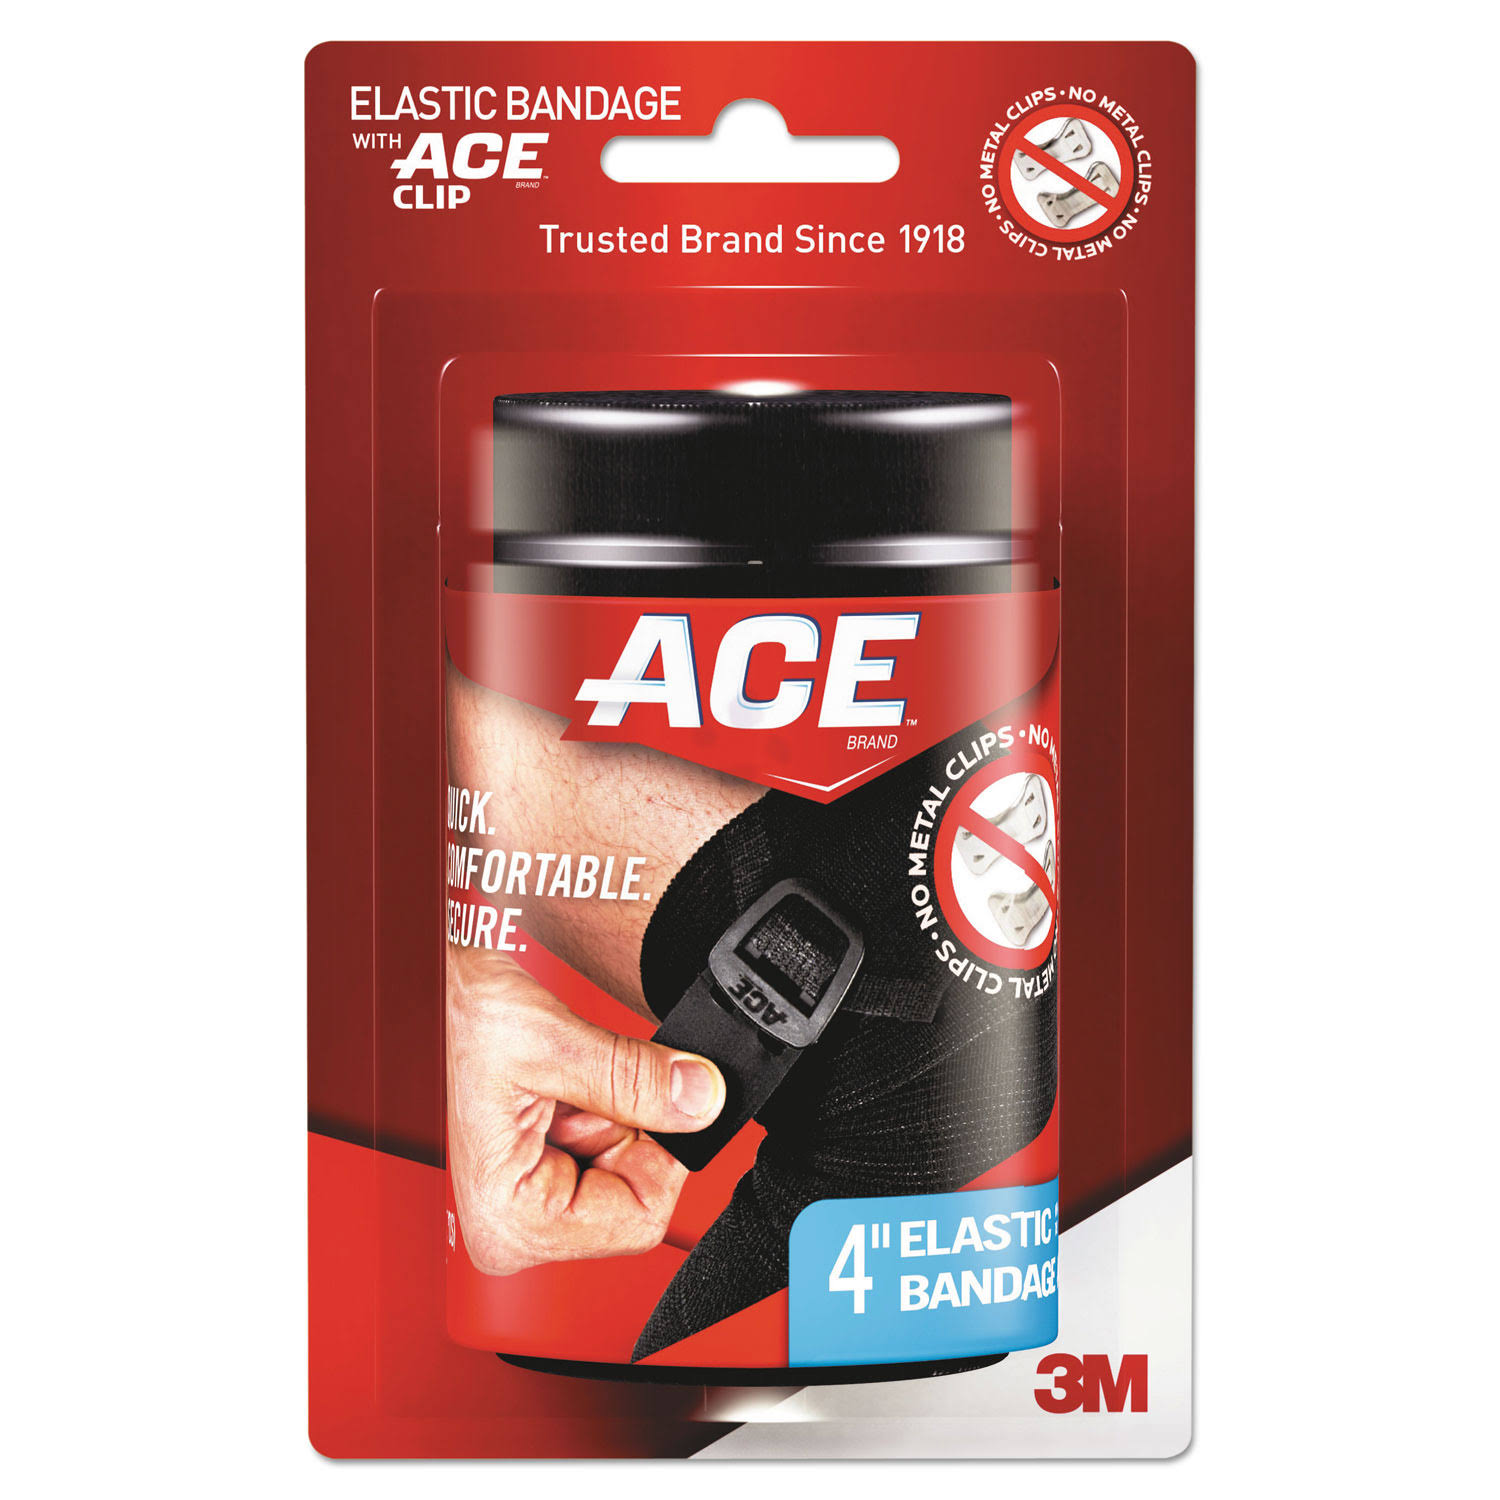 "Ace Elastic Bandage - with Clip, 4"", Black"